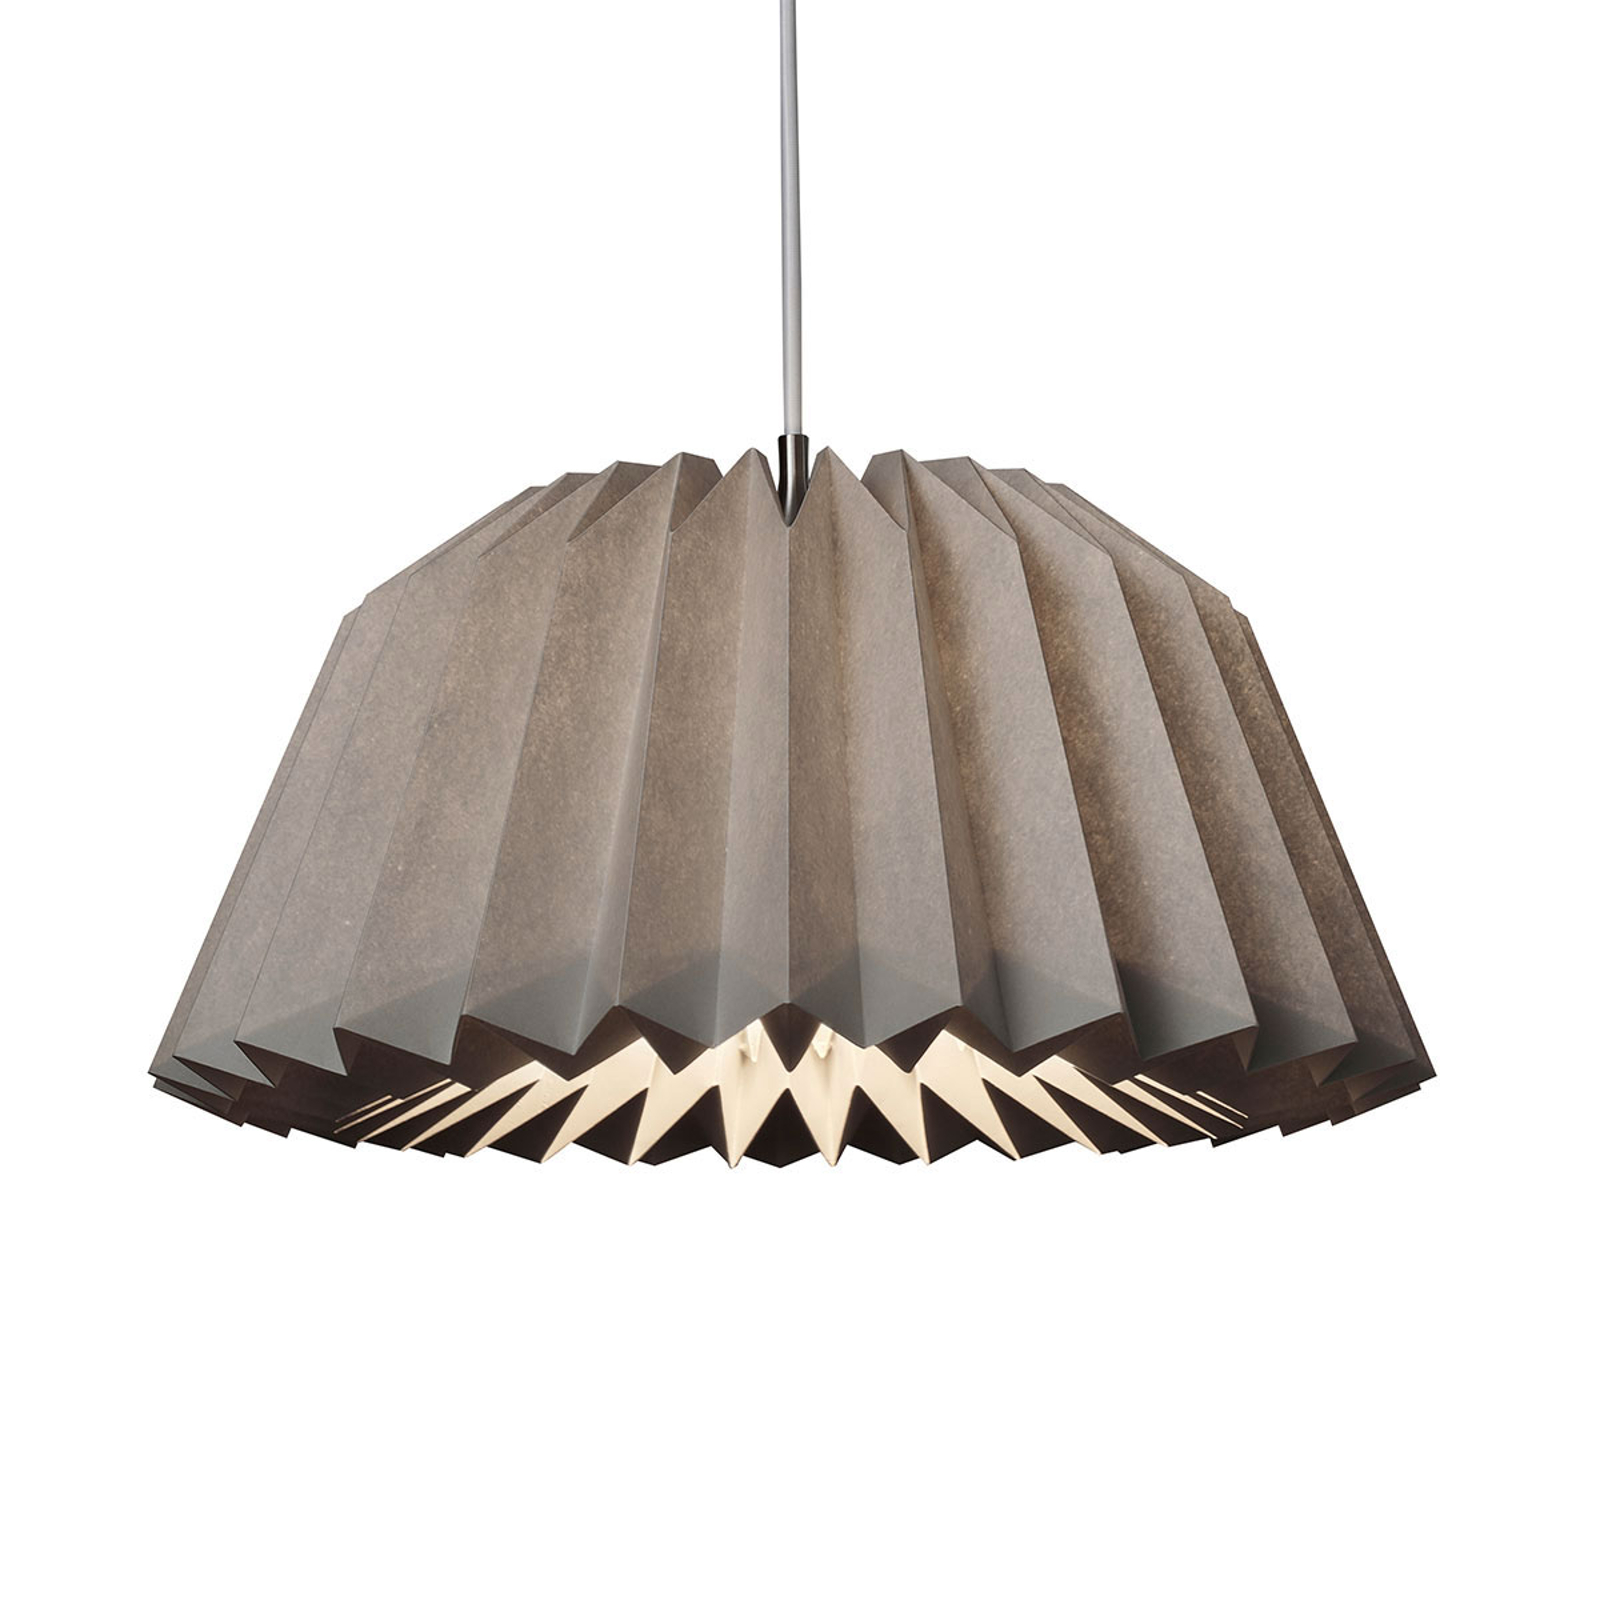 LE KLINT Megatwo hanglamp in zand, medium